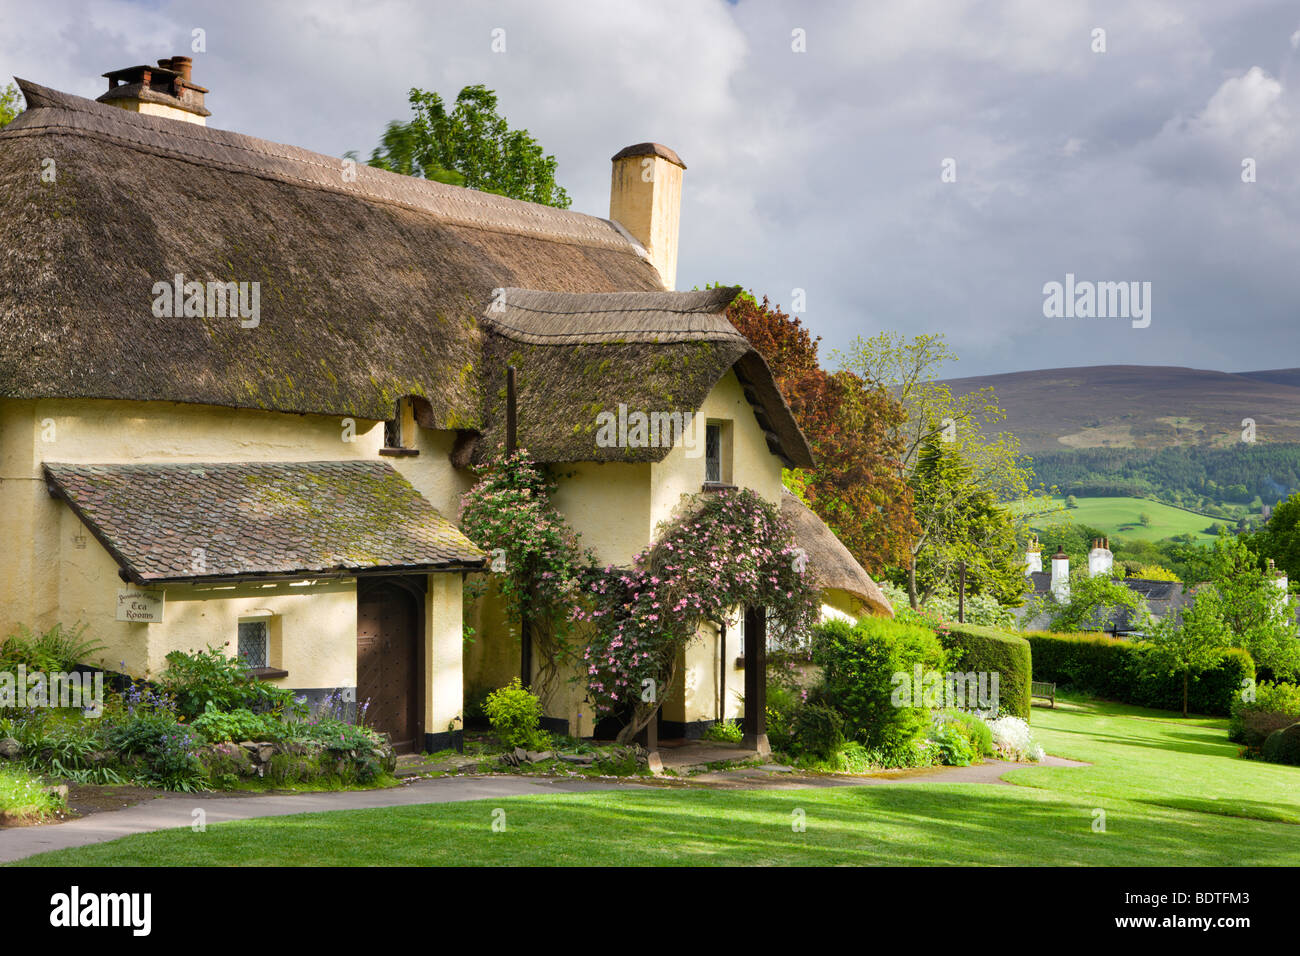 Pretty thatched cottage in the picturesque village of Selworthy, Exmoor National Park, Somerset, England. Spring - Stock Image